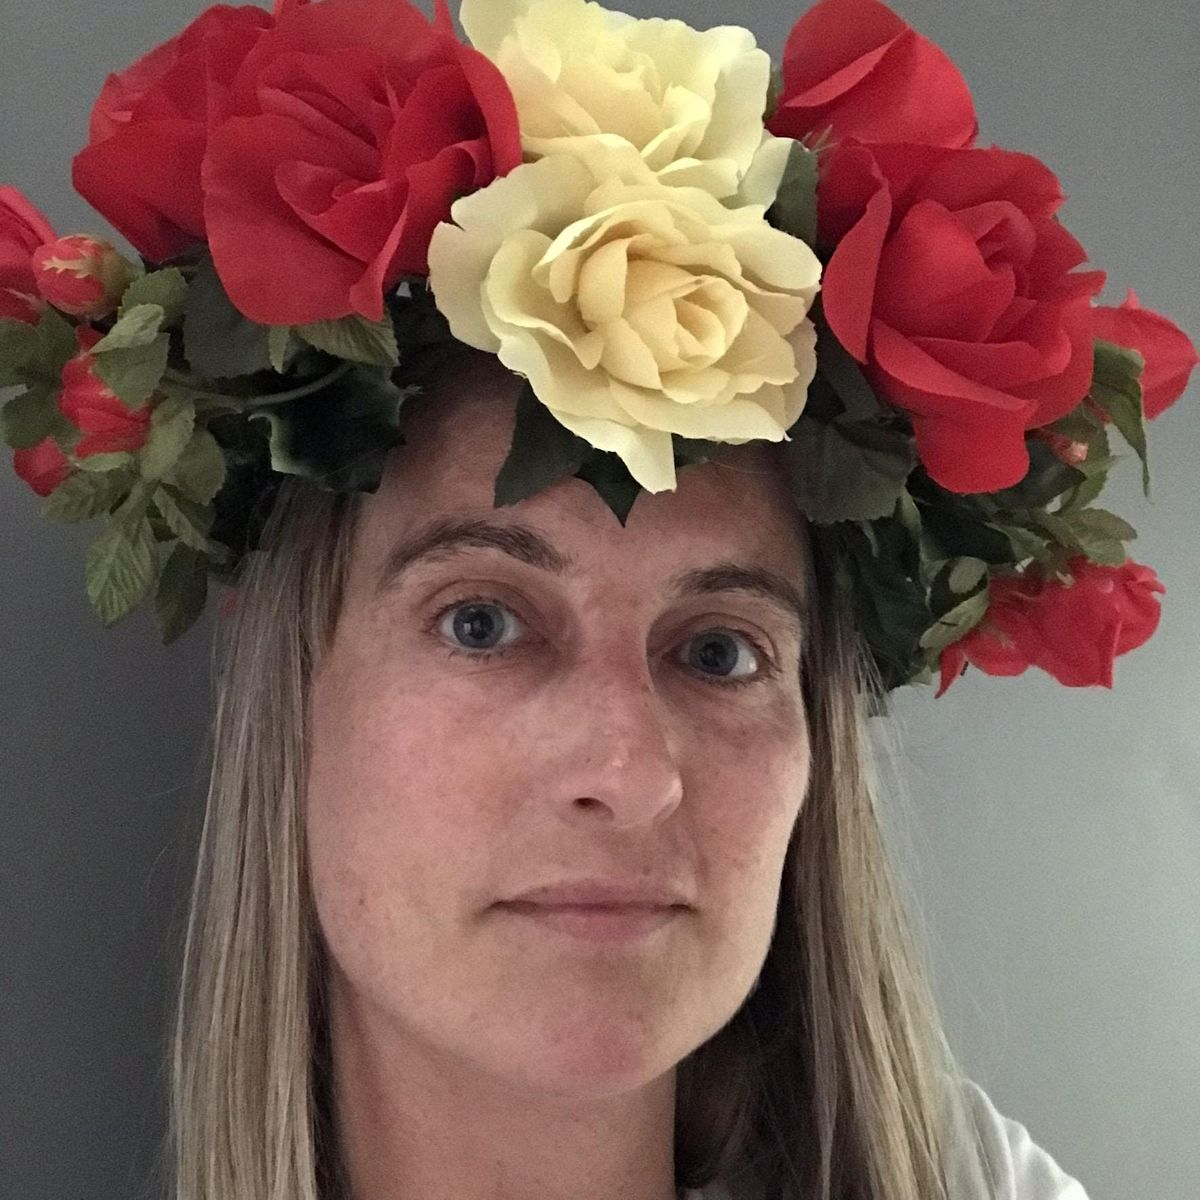 Festival flower crown headdress workshop at house of the crafty festival flower crown headdress workshop at house of the crafty fox faversham izmirmasajfo